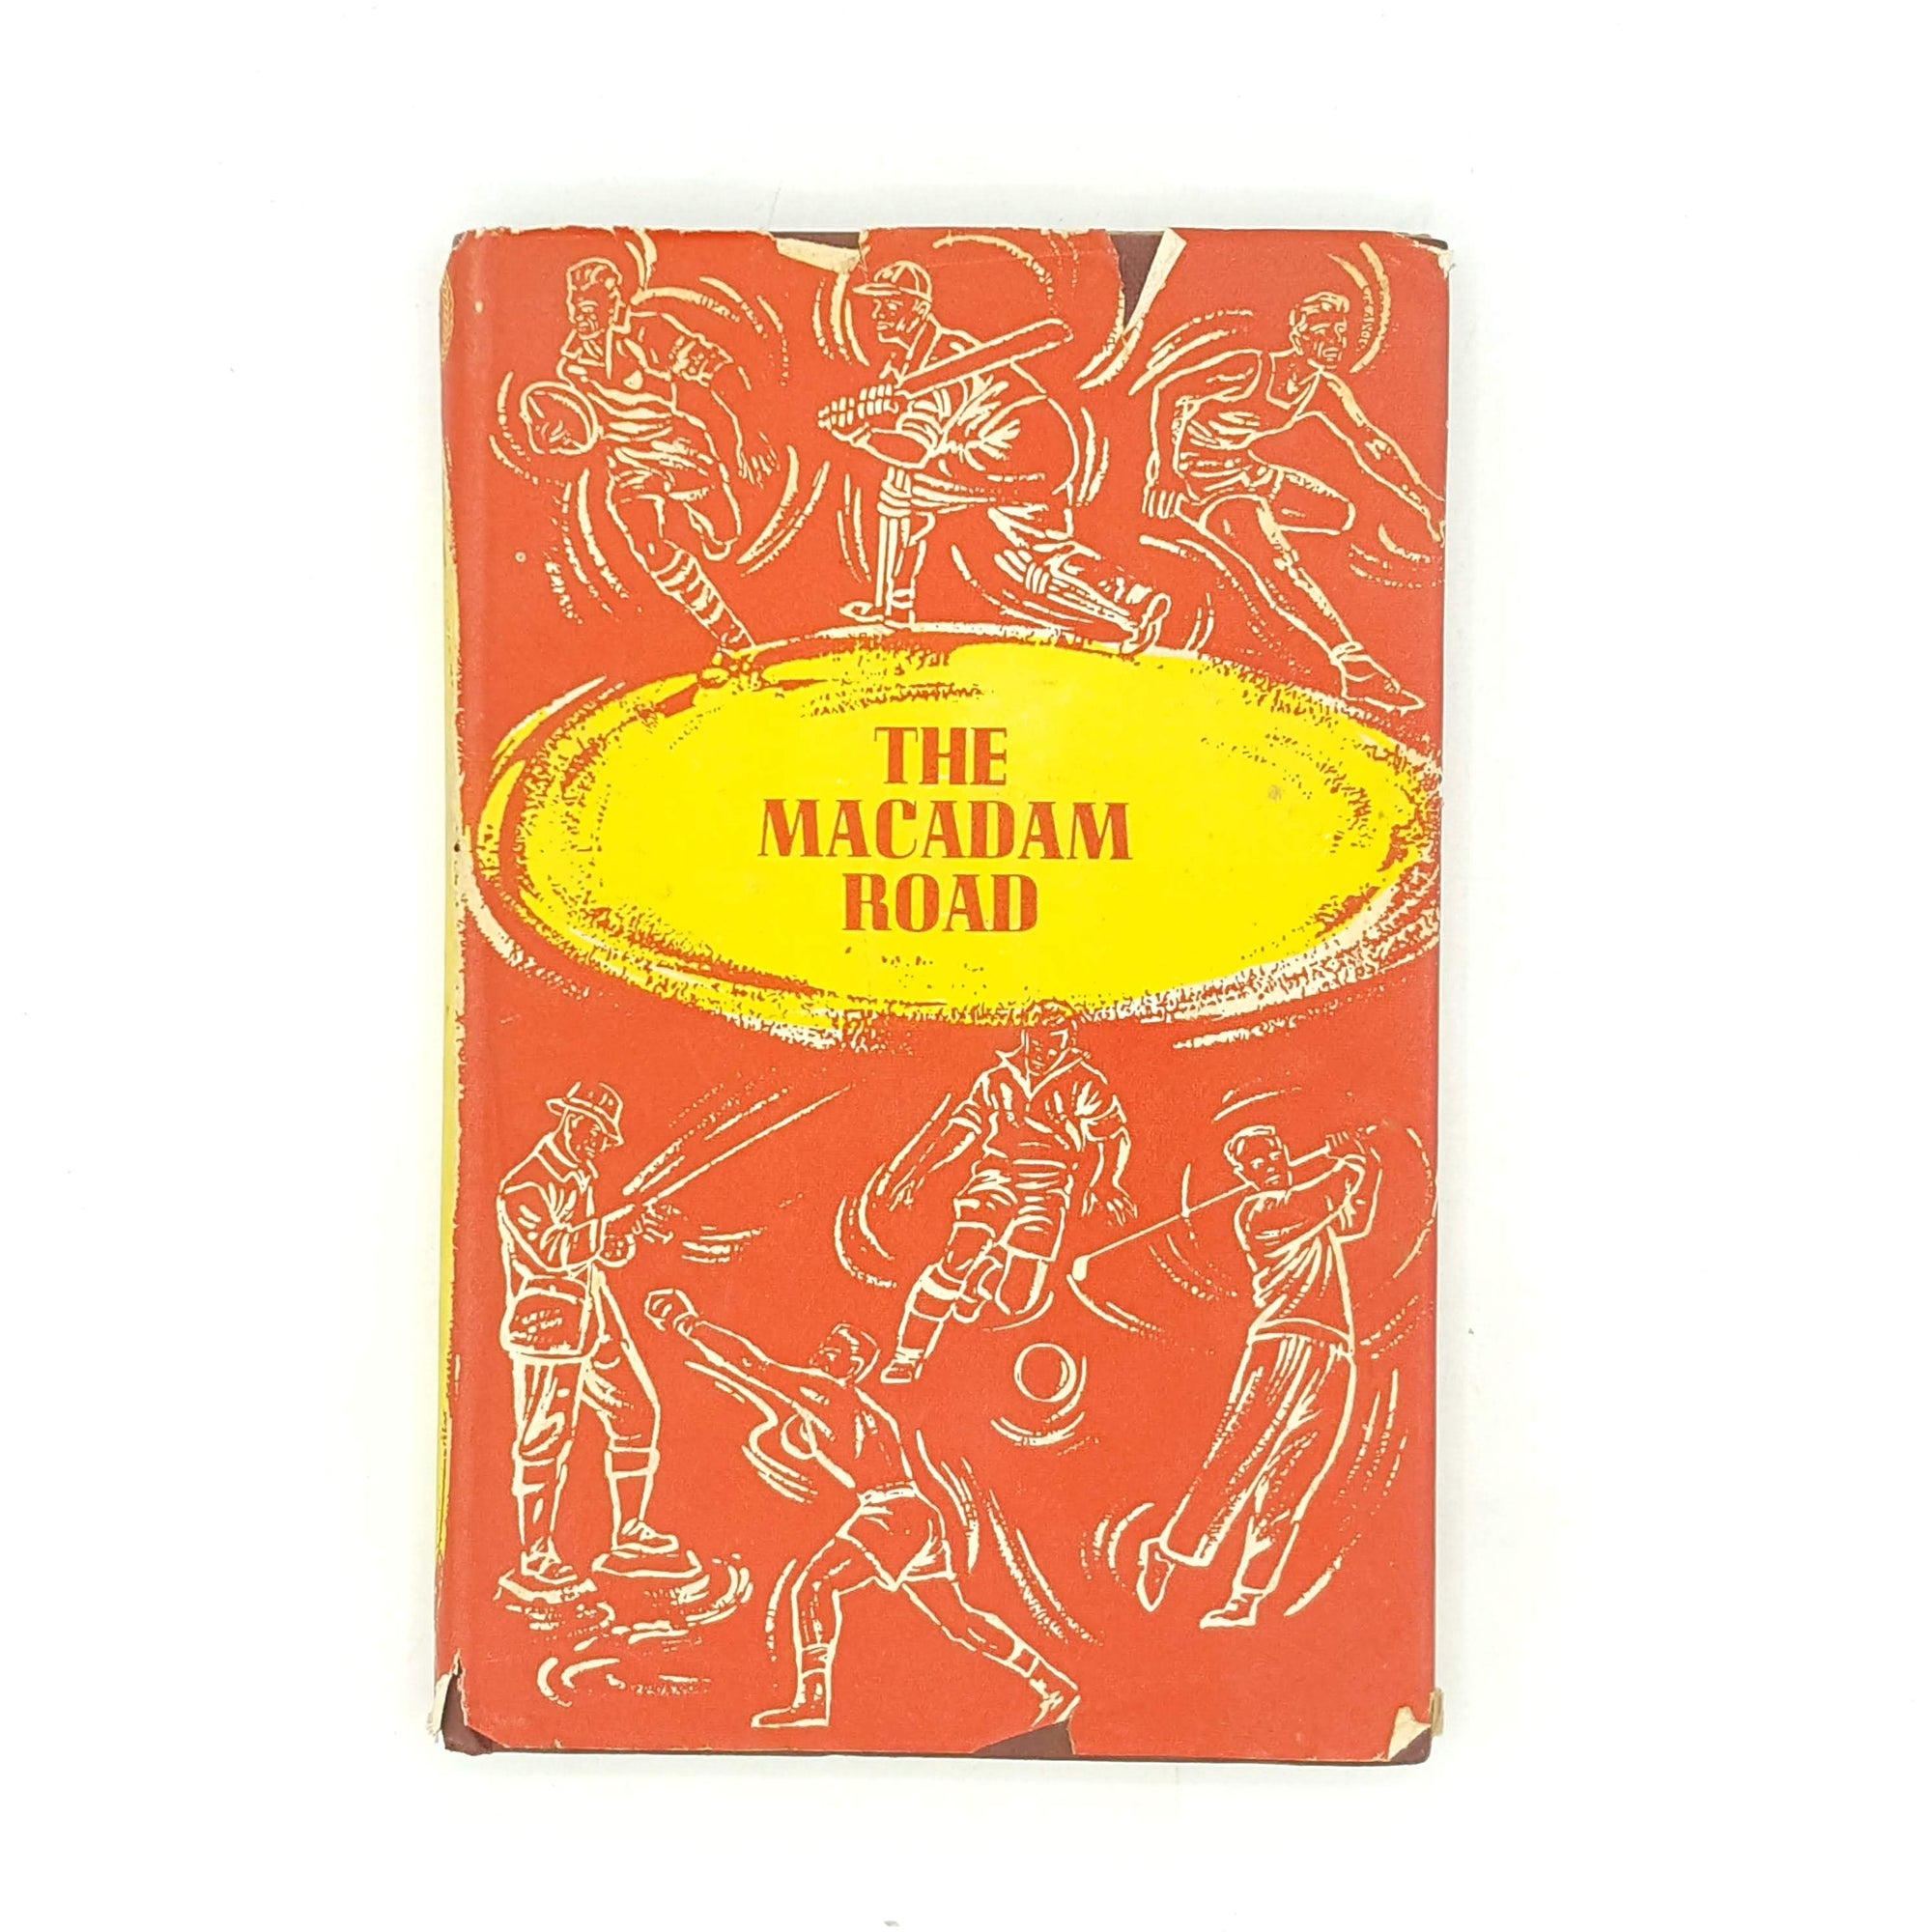 john-macadam-vintage-farrolds-old-country-house-library-books-thrift-patterned-1957-decorative-red-the-sportsman-book-club-the-macadam-road-antique-illustrations-